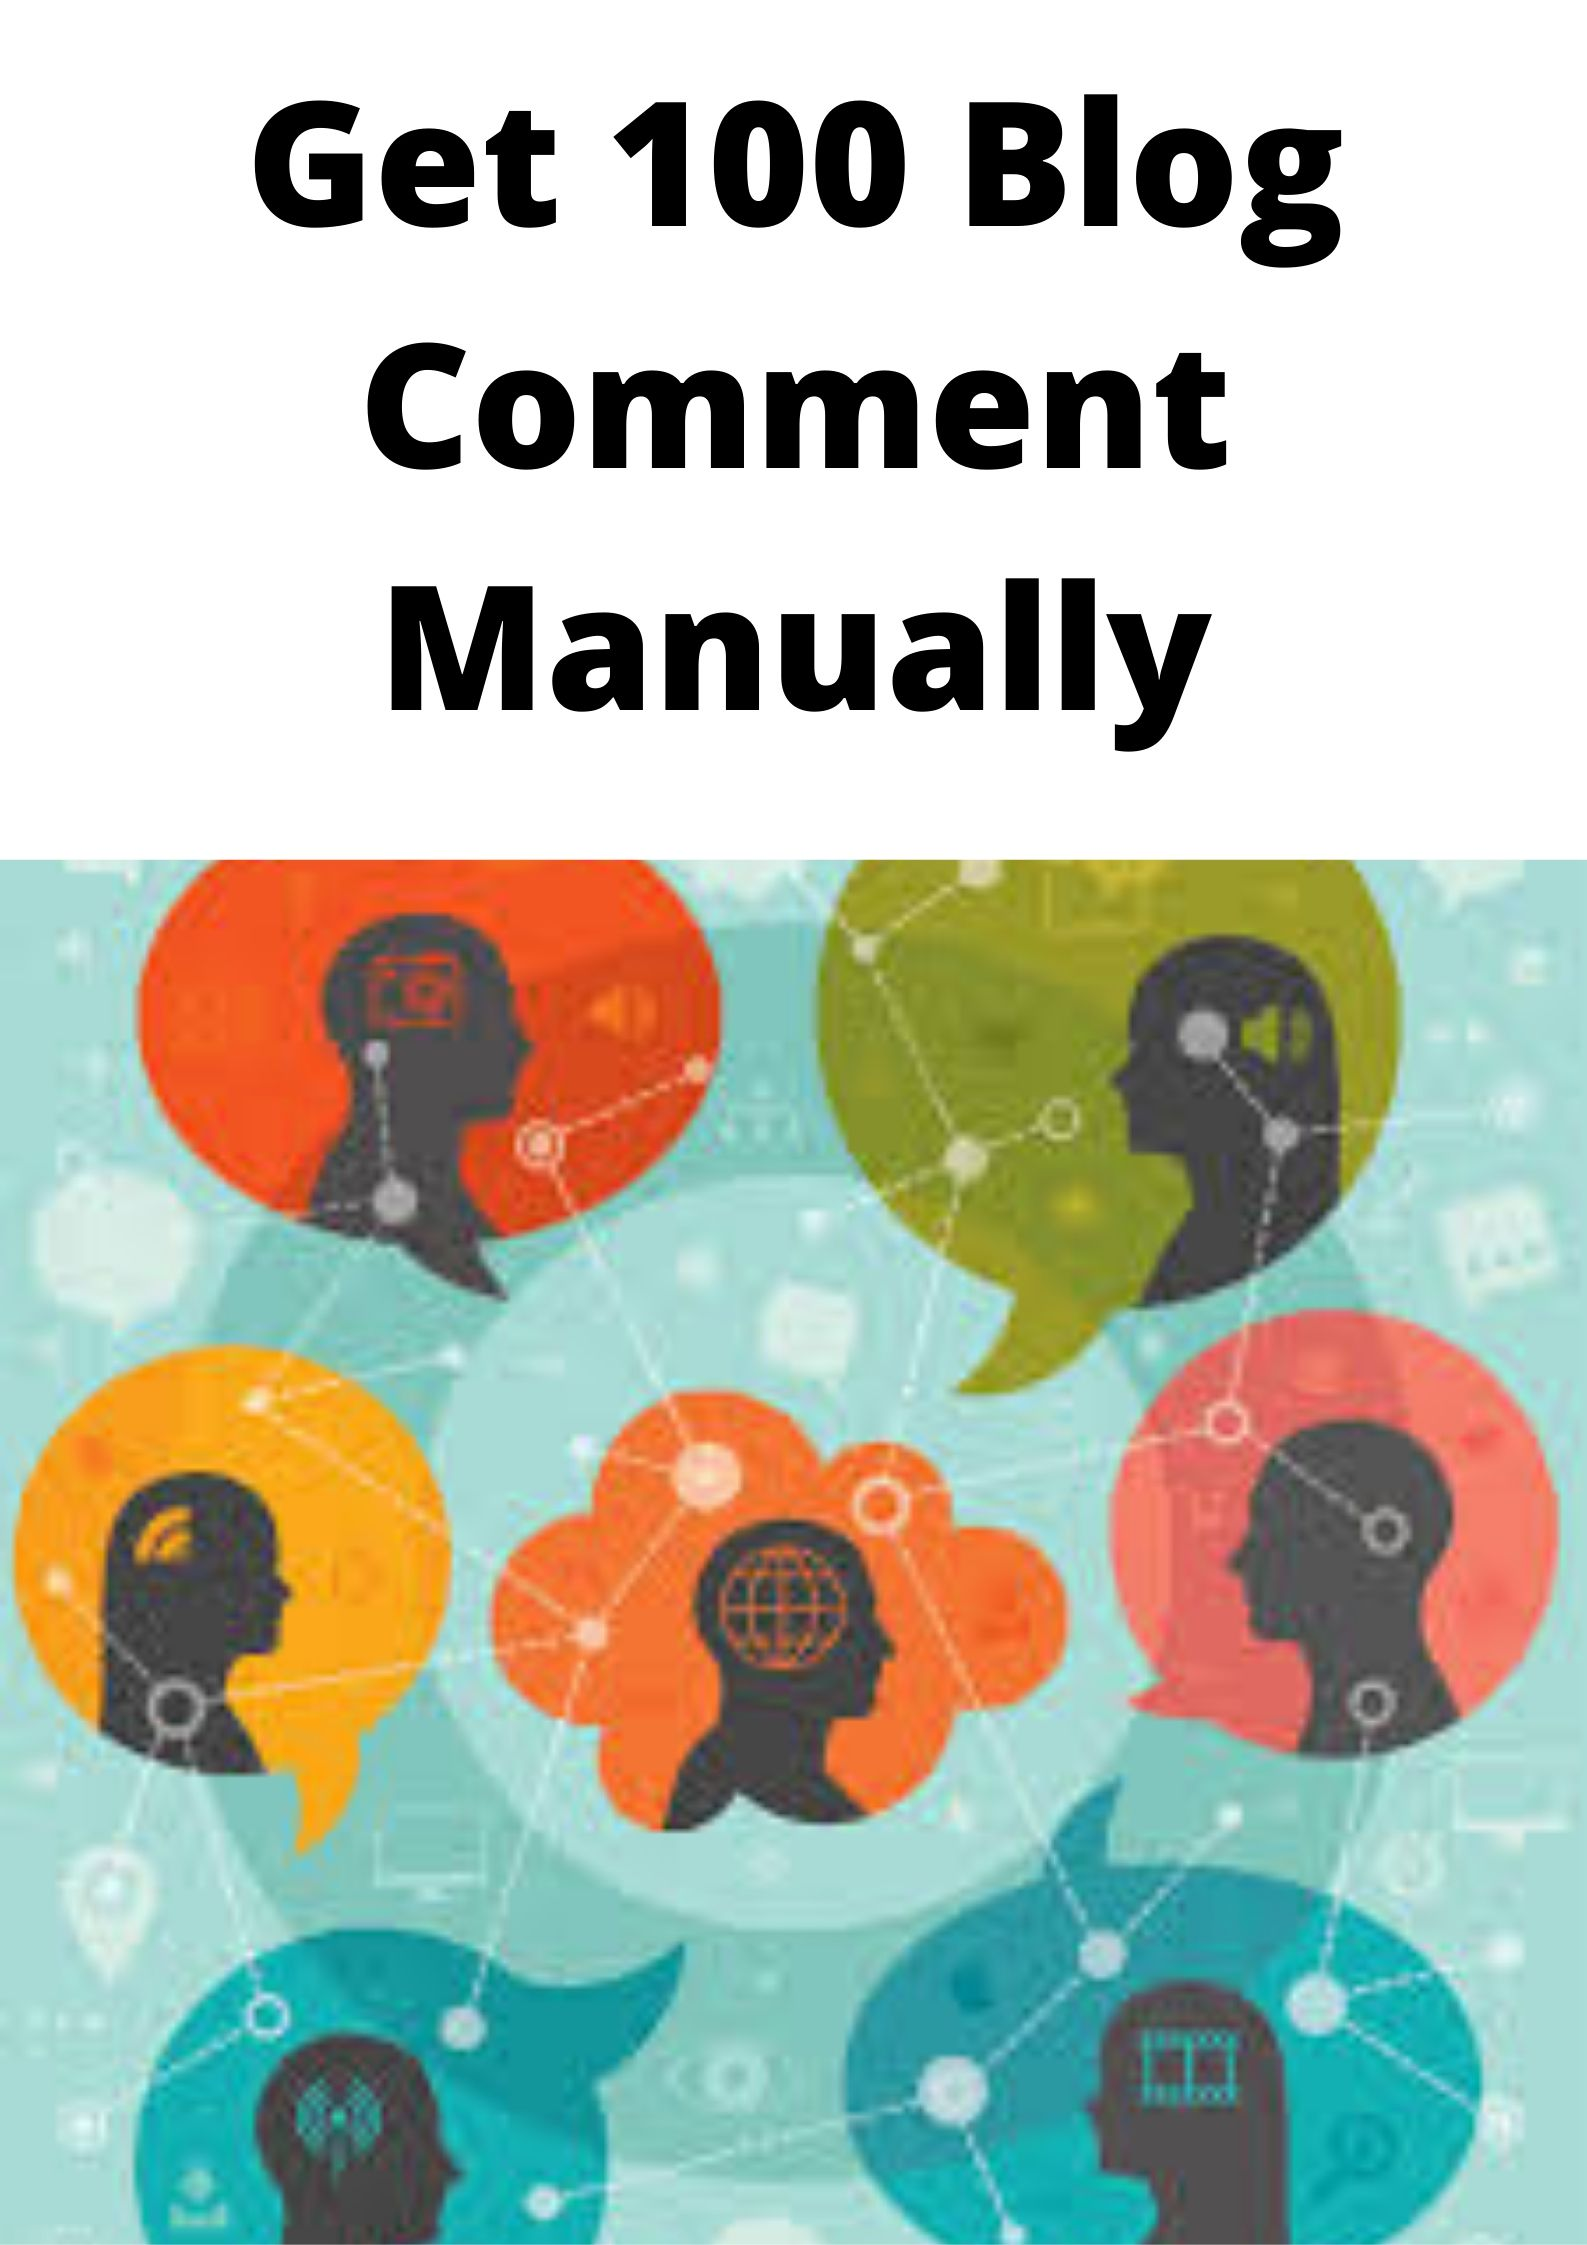 Easy way,get niche 100 Blog Comment Manually in short time.